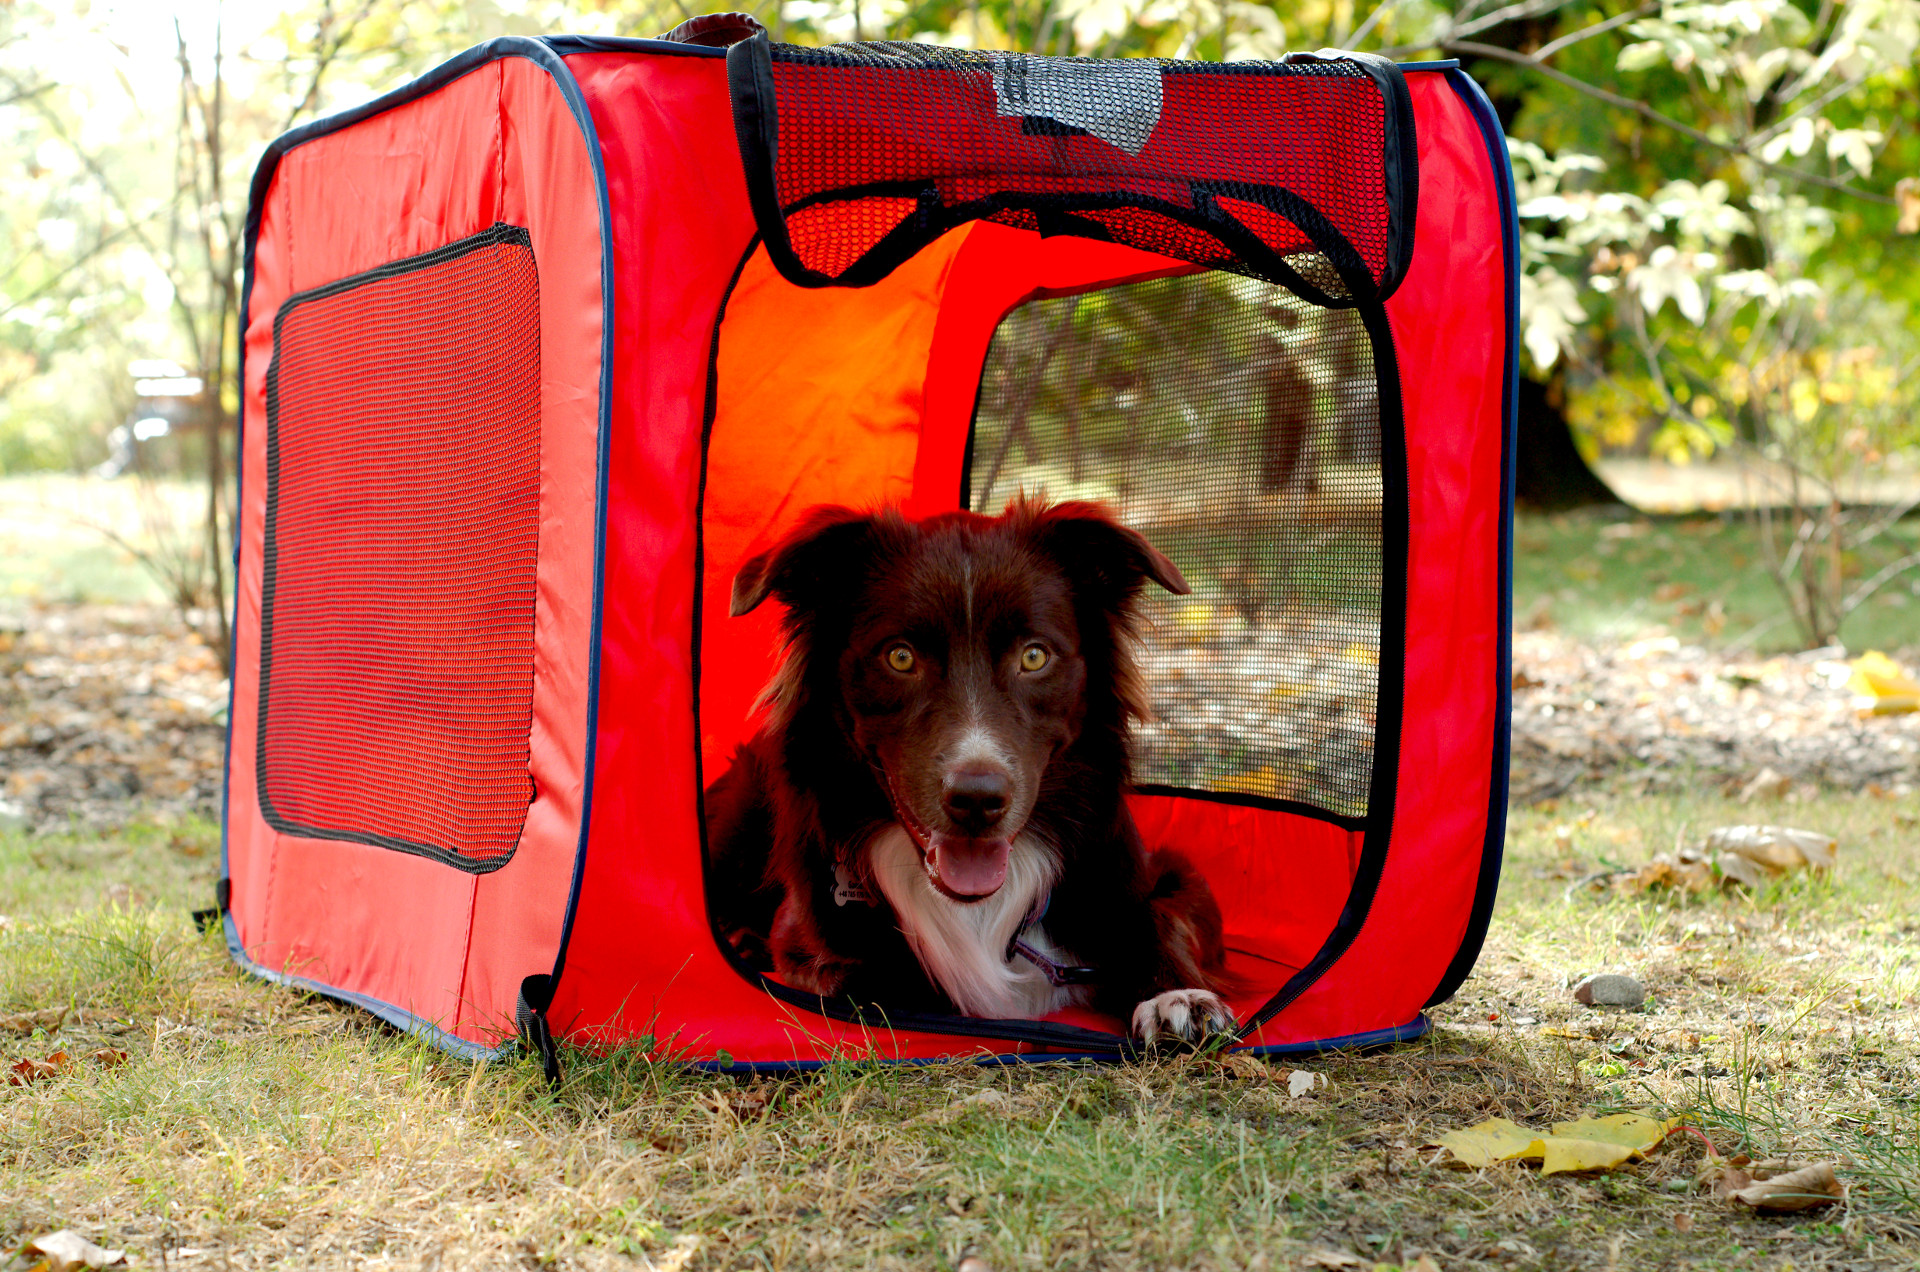 Recenzja: Portable Dog Kennel Pies do kwadratu